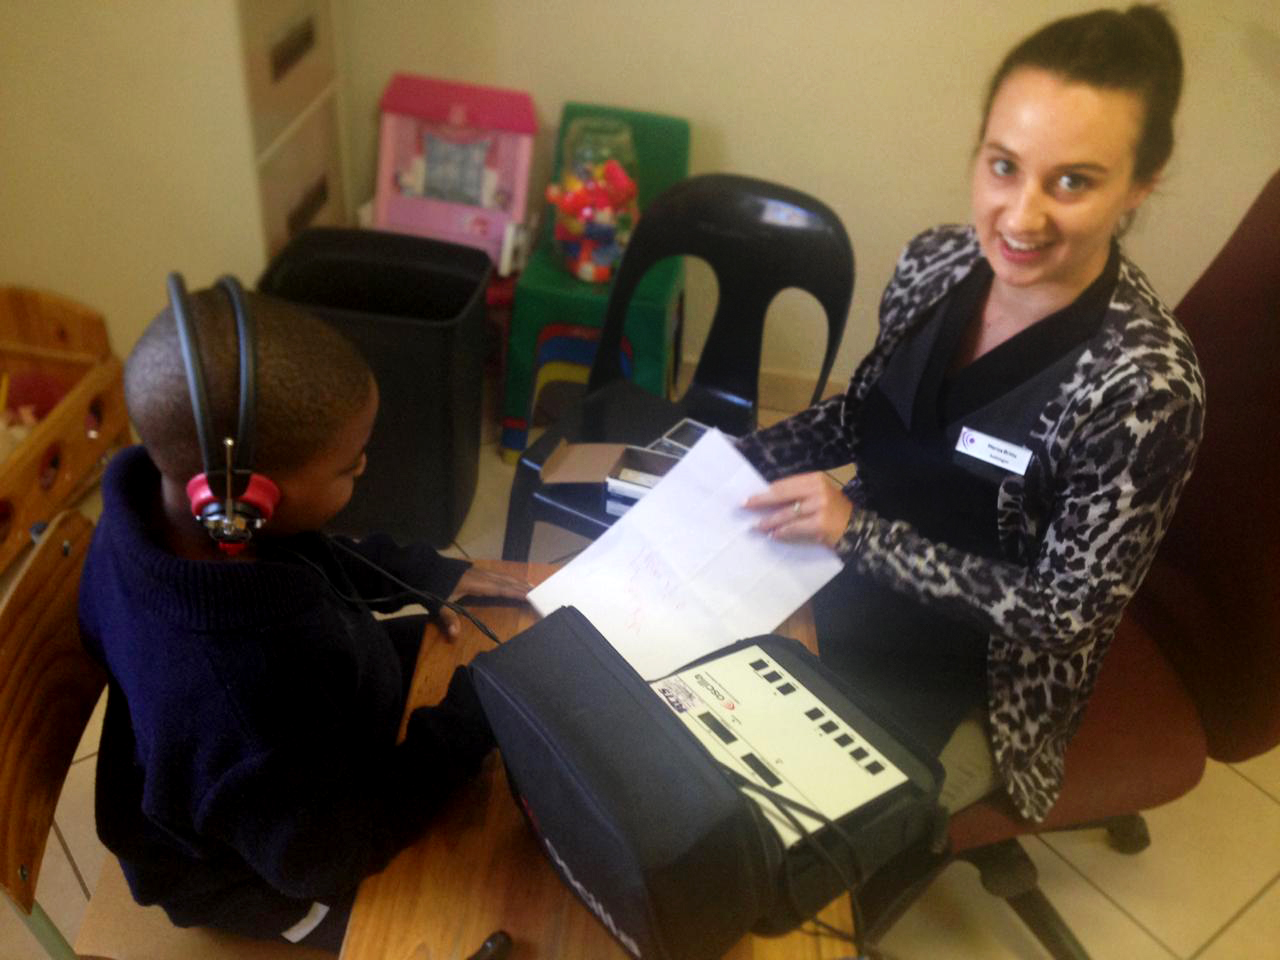 Audiologist testing a child's hearing